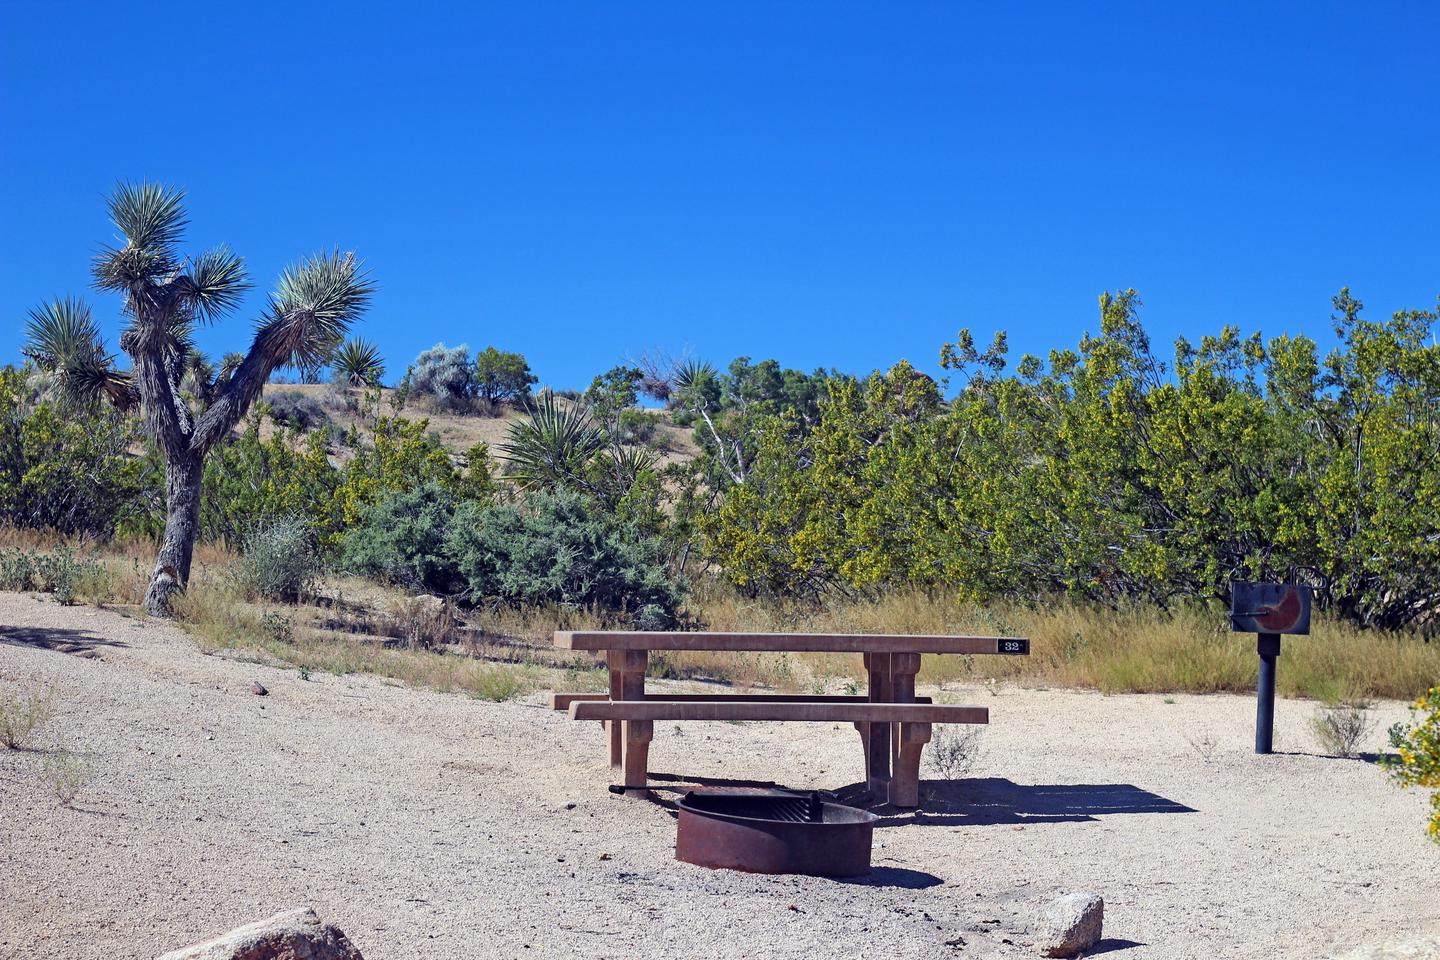 Campsite  with picnic table surrounded by boulders and green plants.SharedCampsite.parking for campsite.